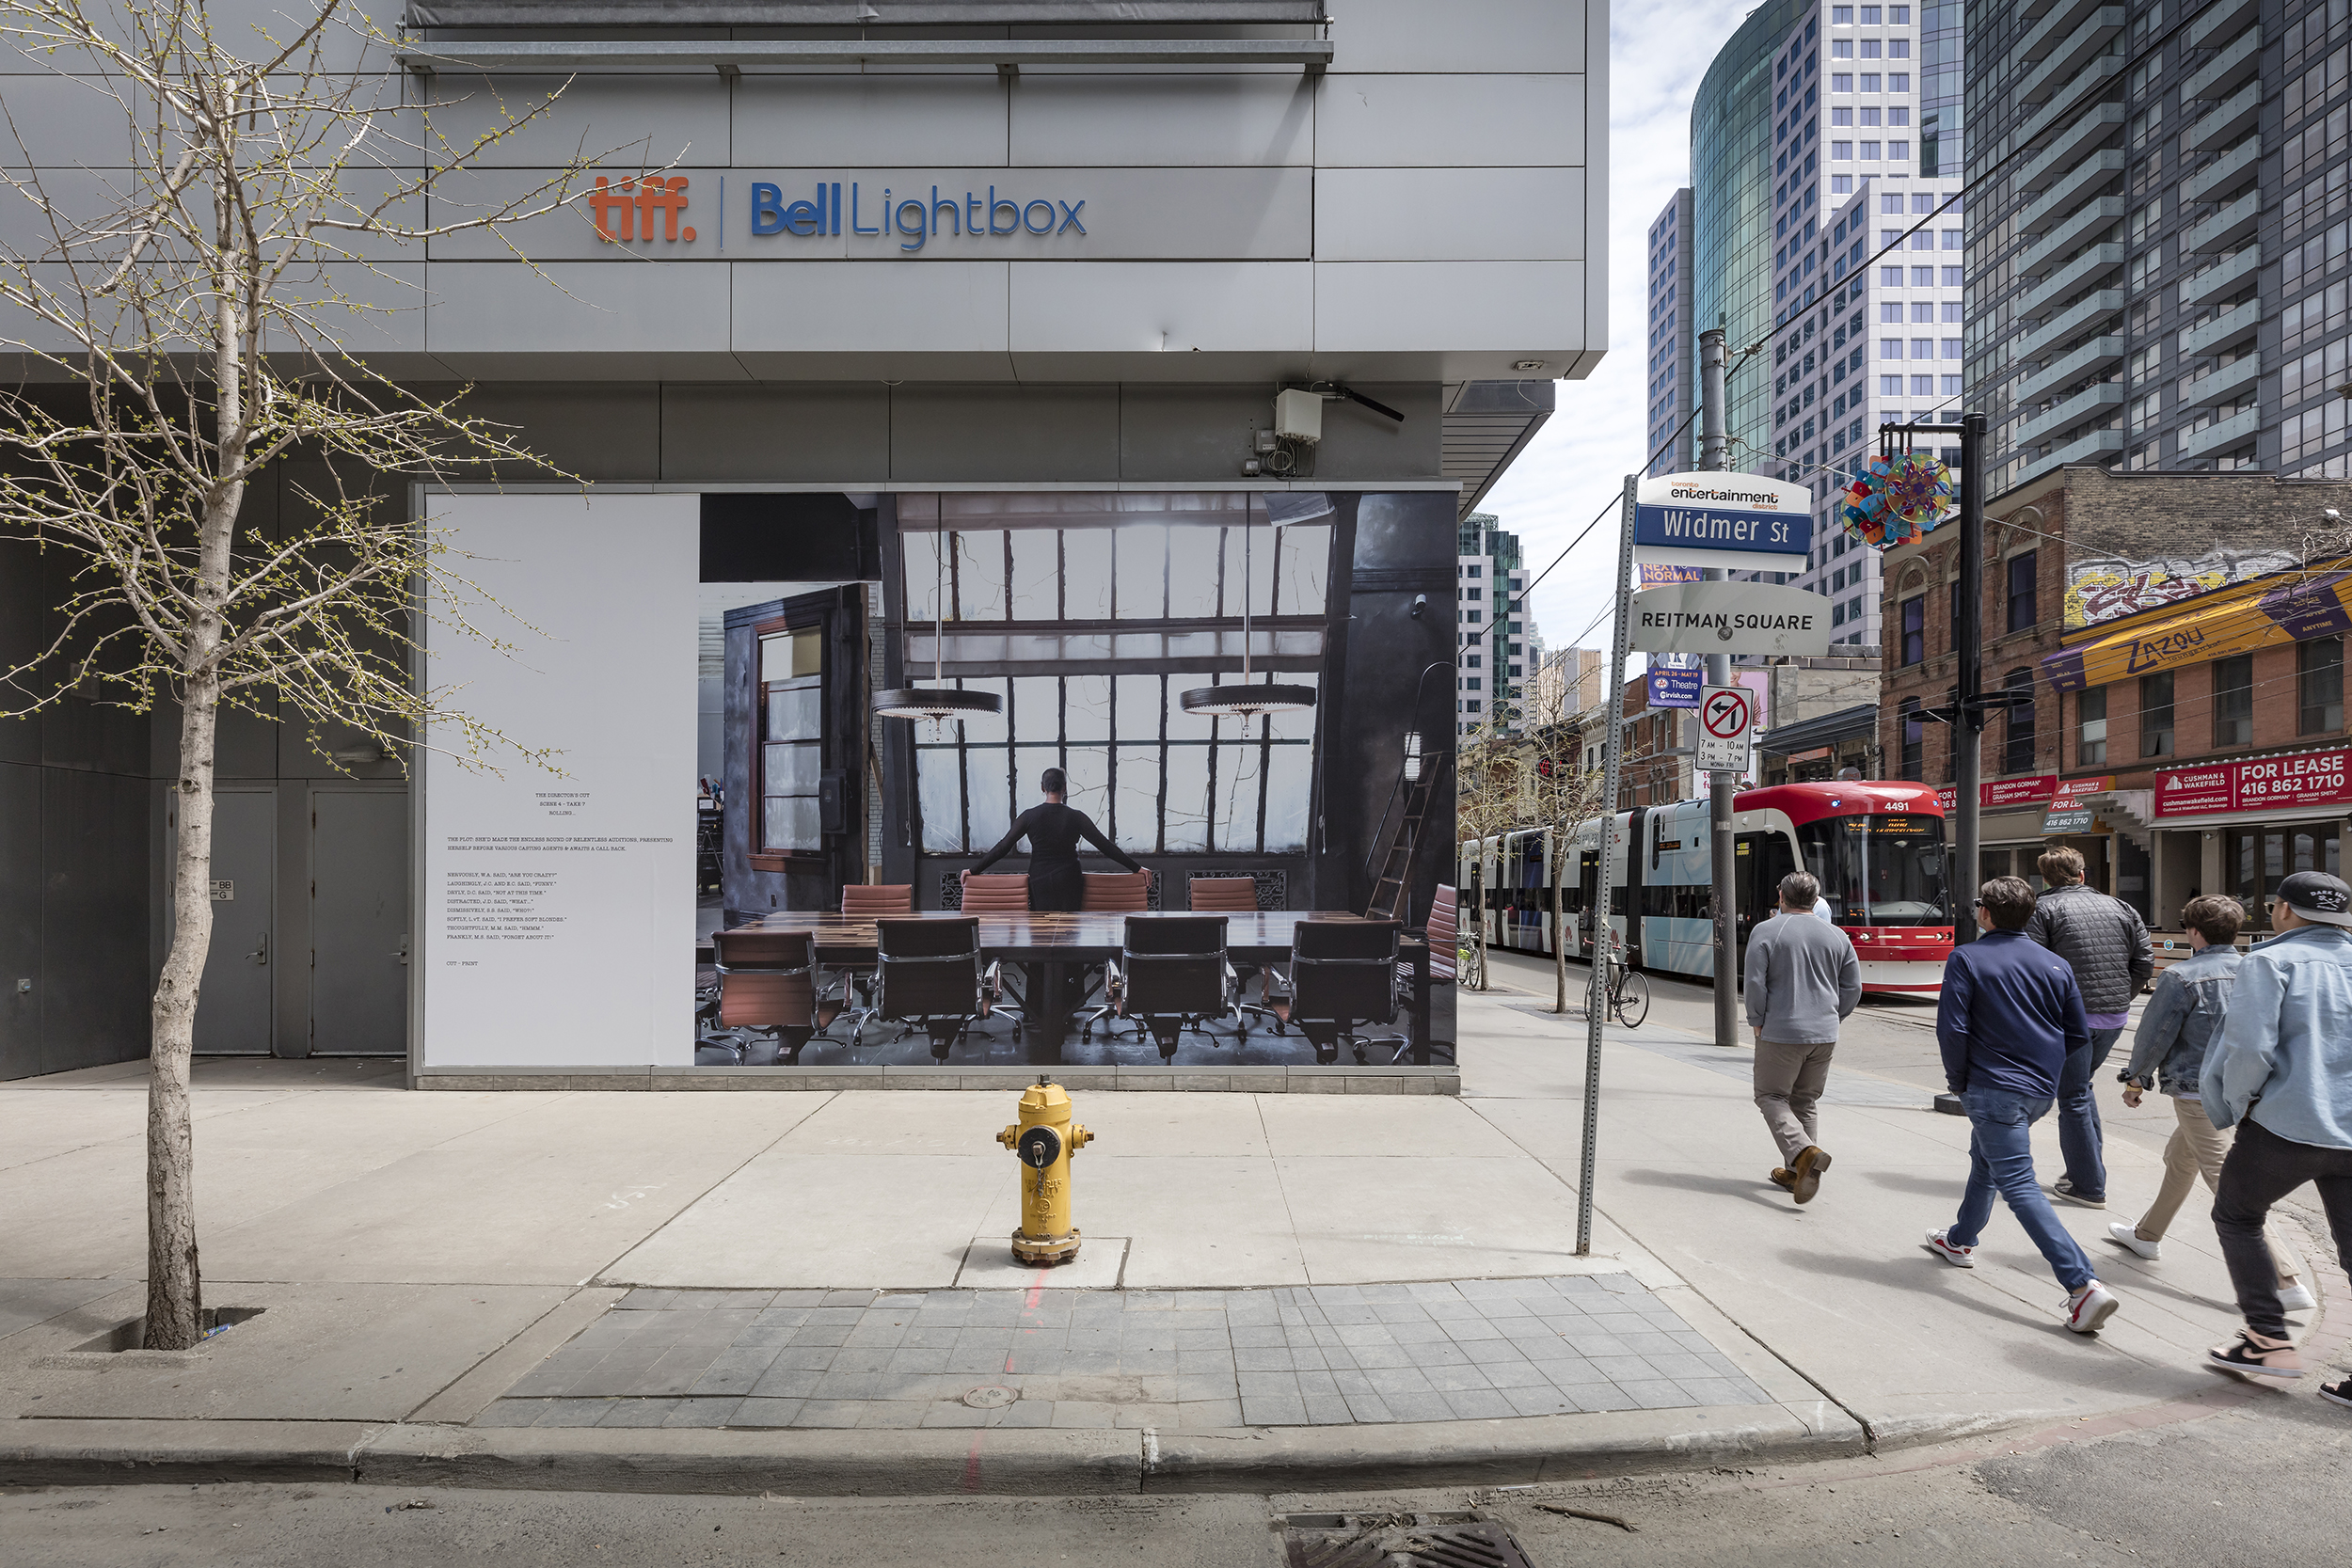 Carrie Mae Weems, irector's Cut and The Bad and the Beautiful), 2016., Public Installation at TIFF Bell Lightbox, windows at King St. W. and Widmer St., Toronto, May 1–31, 2019. Photo: Toni Hafkenscheid. © Scotiabank CONTACT Photography Festival. Courtesy the artist and Jack Shainman Gallery, New York, NY.